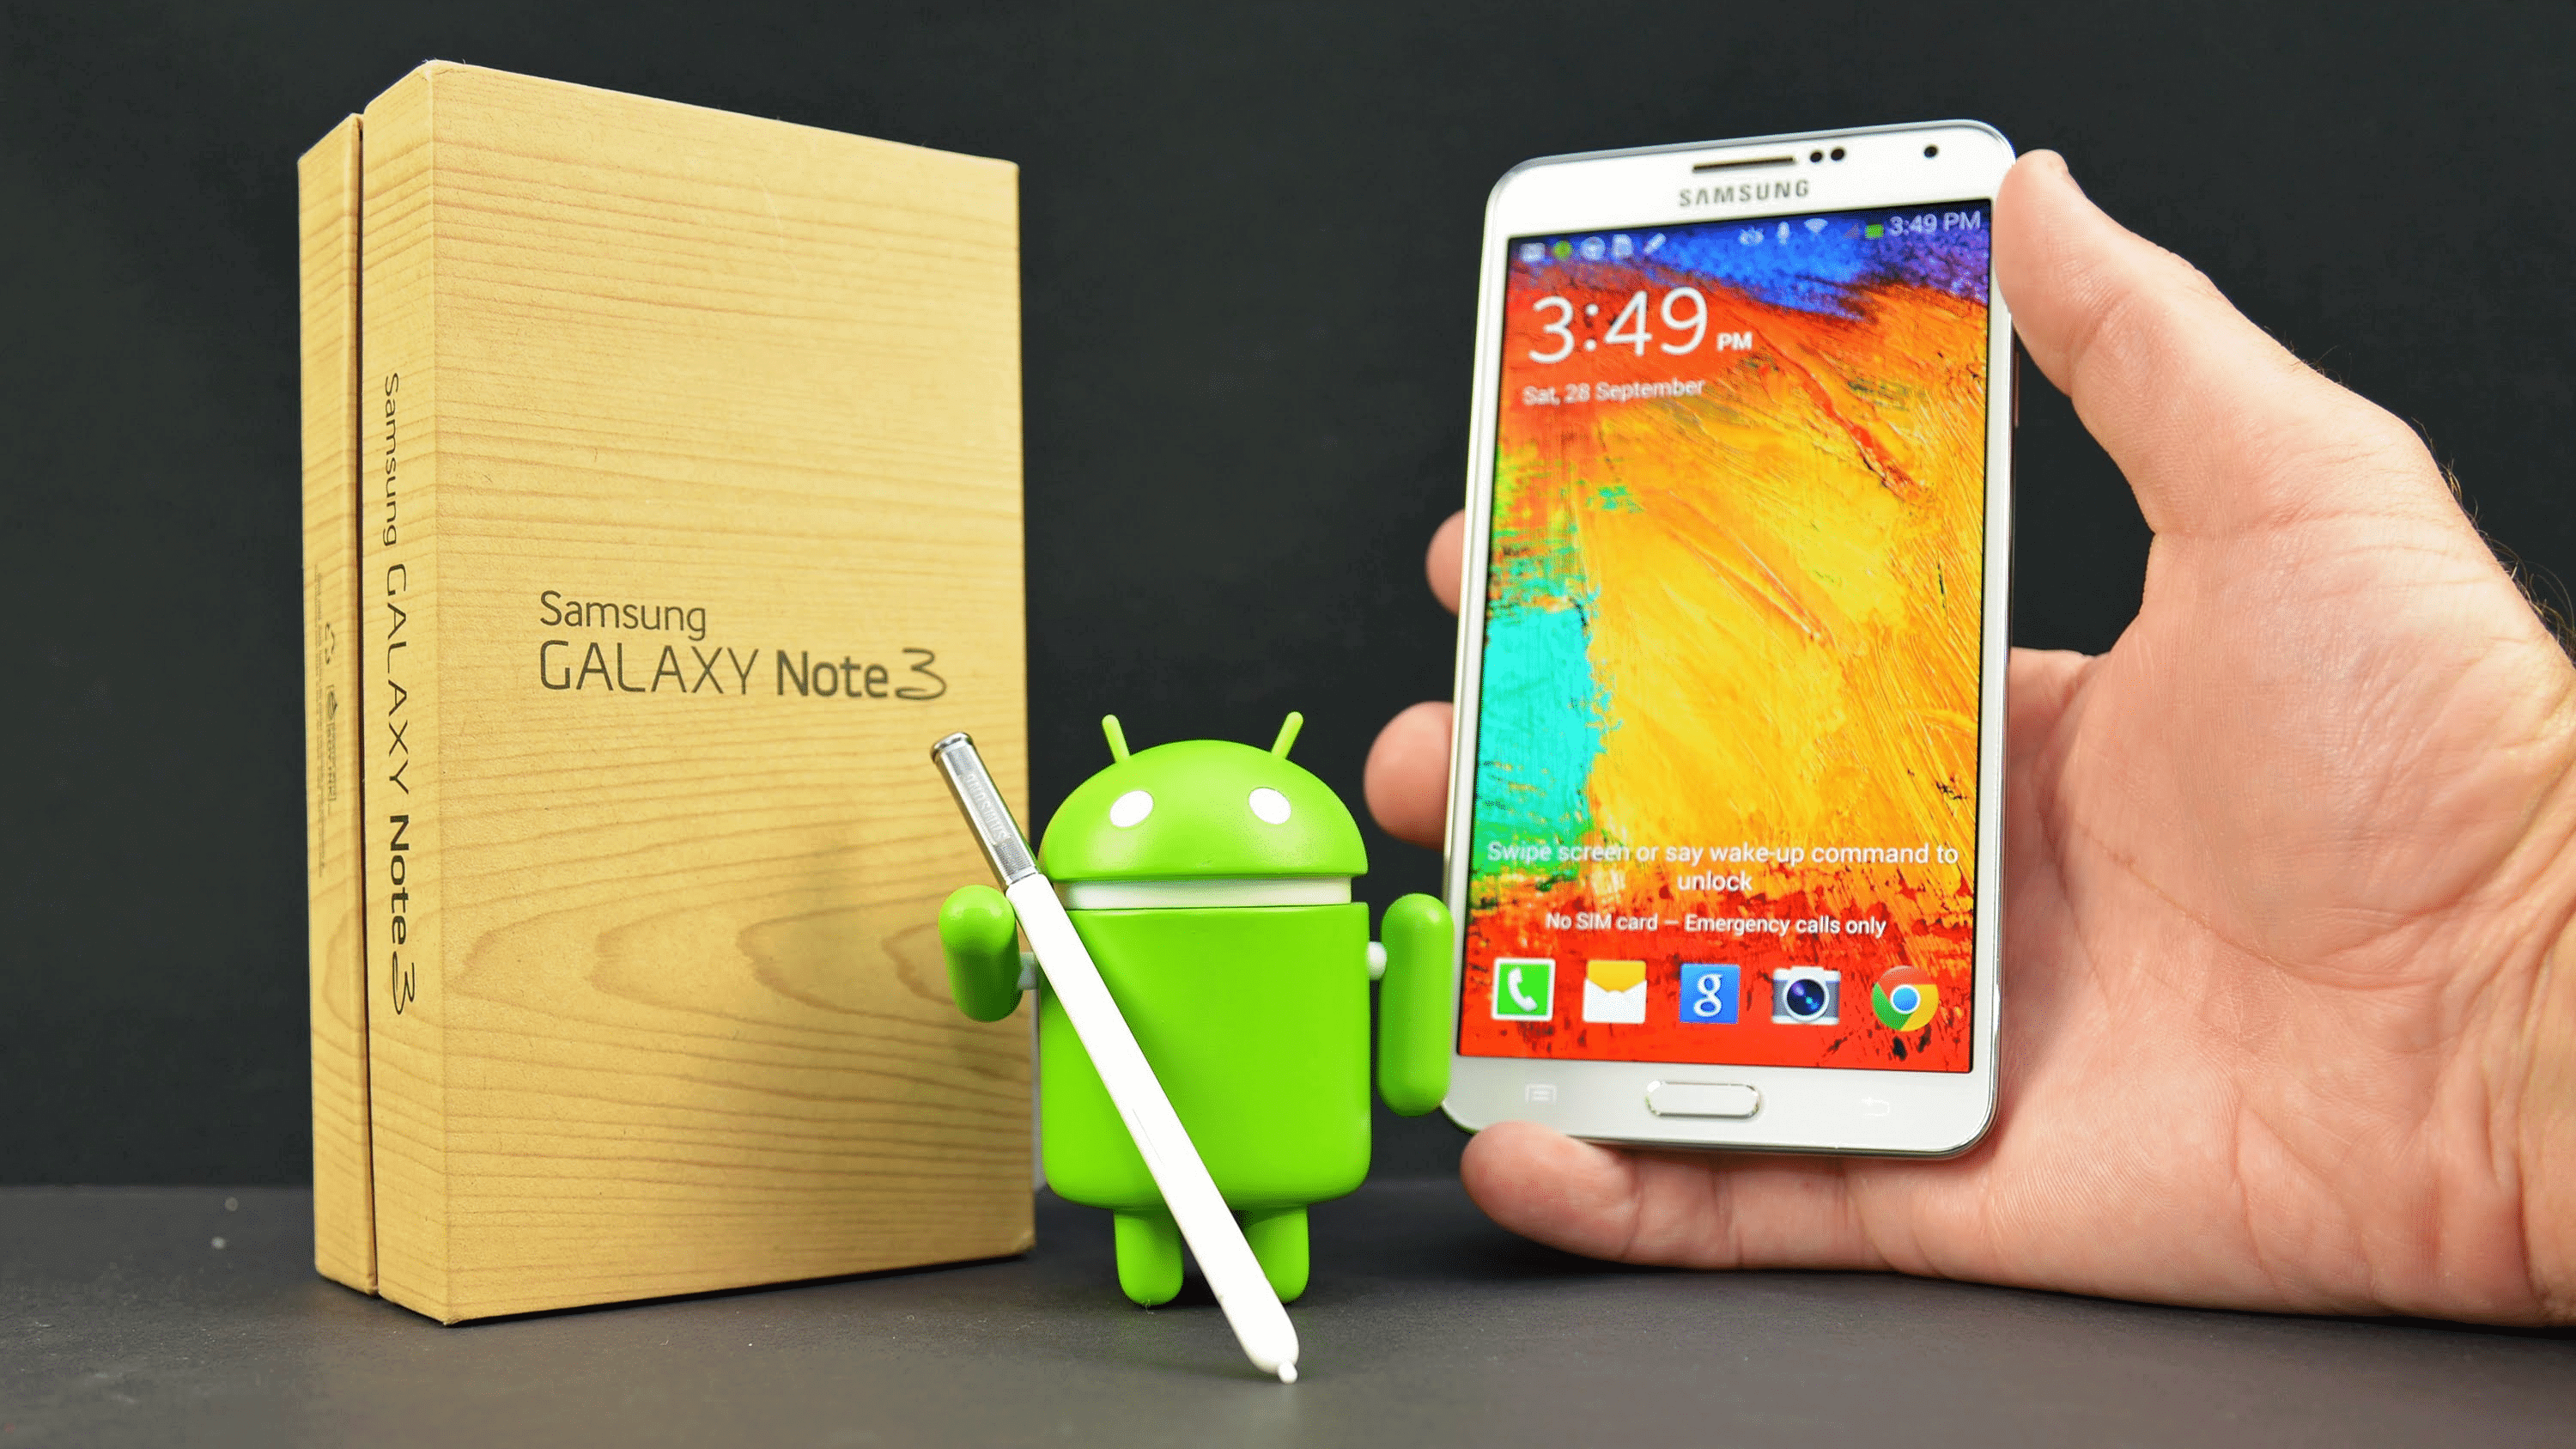 How To Install Official Lineage OS 14.1 Android 7.1.2 Nougat Custom ROM On Galaxy Note 3 1